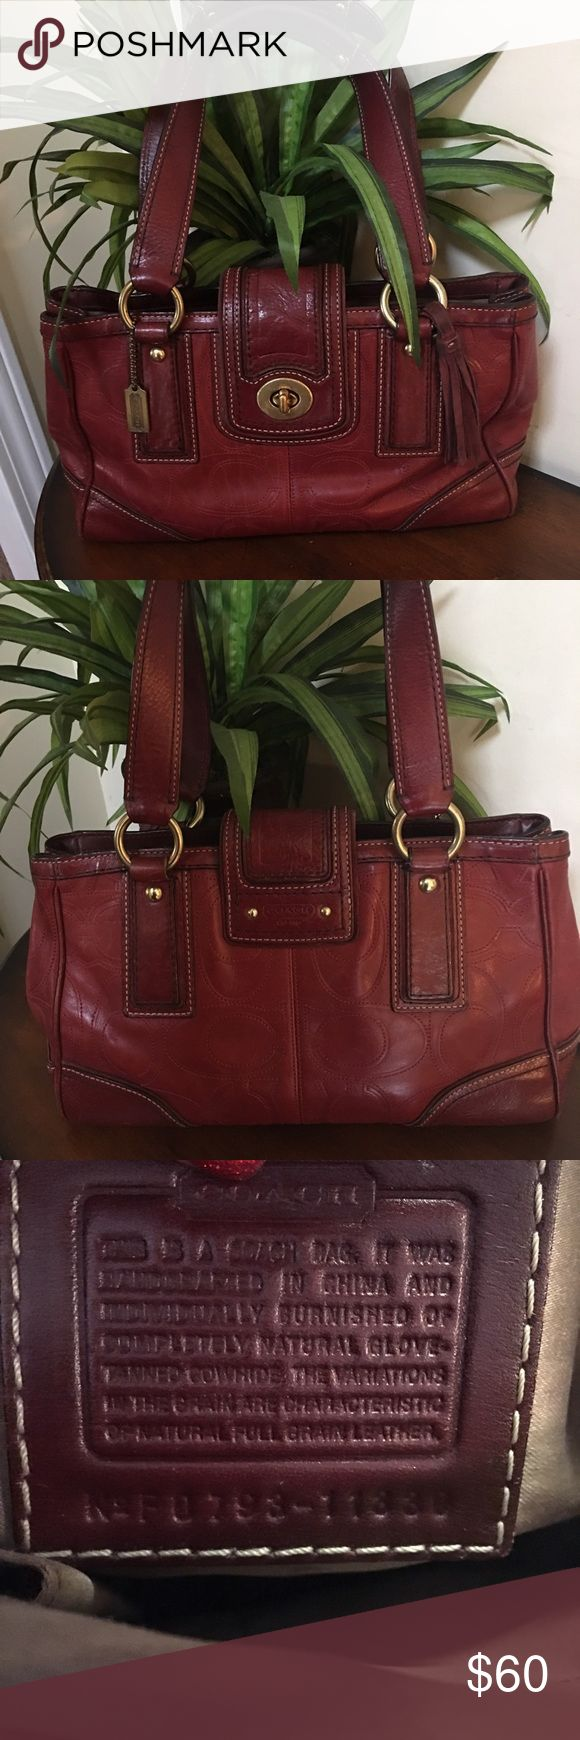 🌺🎀Coach Maroon Leather Purse🌺🎀 🌺🎀Coach Maroon Leather Purse is in GUC and such a beautiful bag to be worn as an everyday carry bag or as a special occasion bag🌺🎀 Coach Bags Shoulder Bags